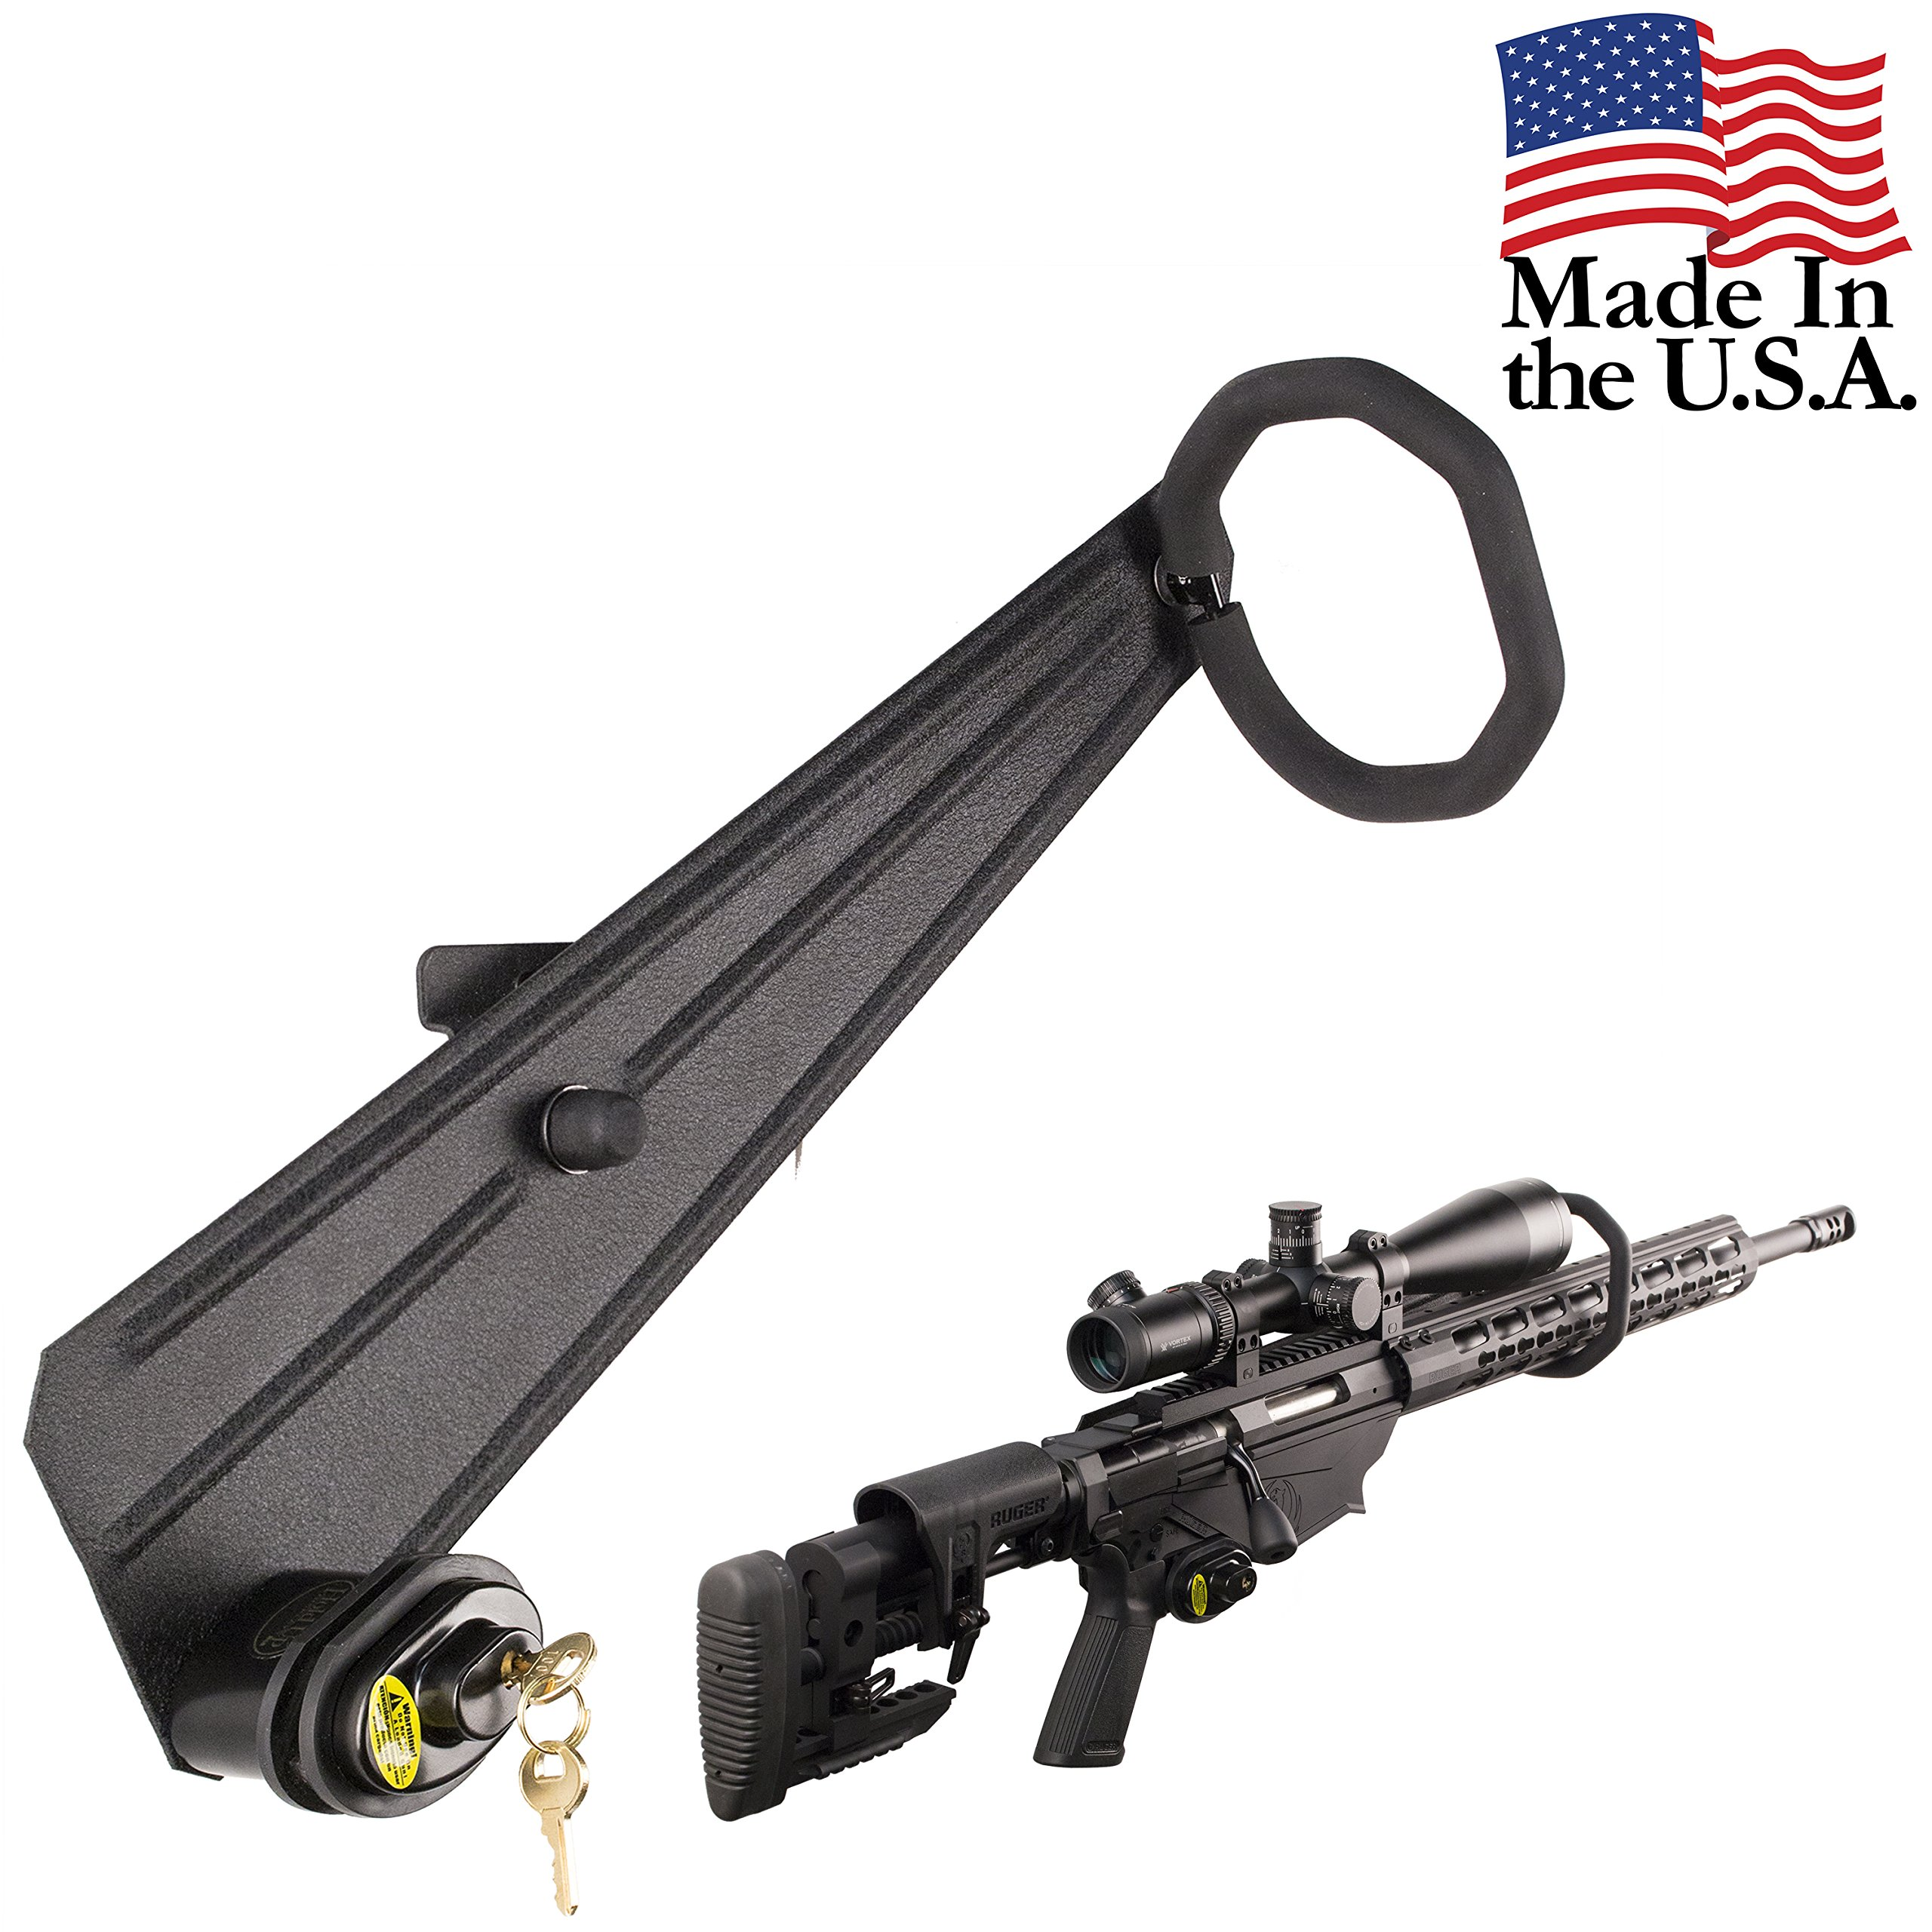 Hold Up Displays - Gun Rack with Black Trigger Lock Rifle Storage Holds Any Standard Shotgun or Rifle for Winchester Remington Ruger Firearms and More - Heavy Duty Steel - Made in USA (Black Lock) by Hold Up Displays